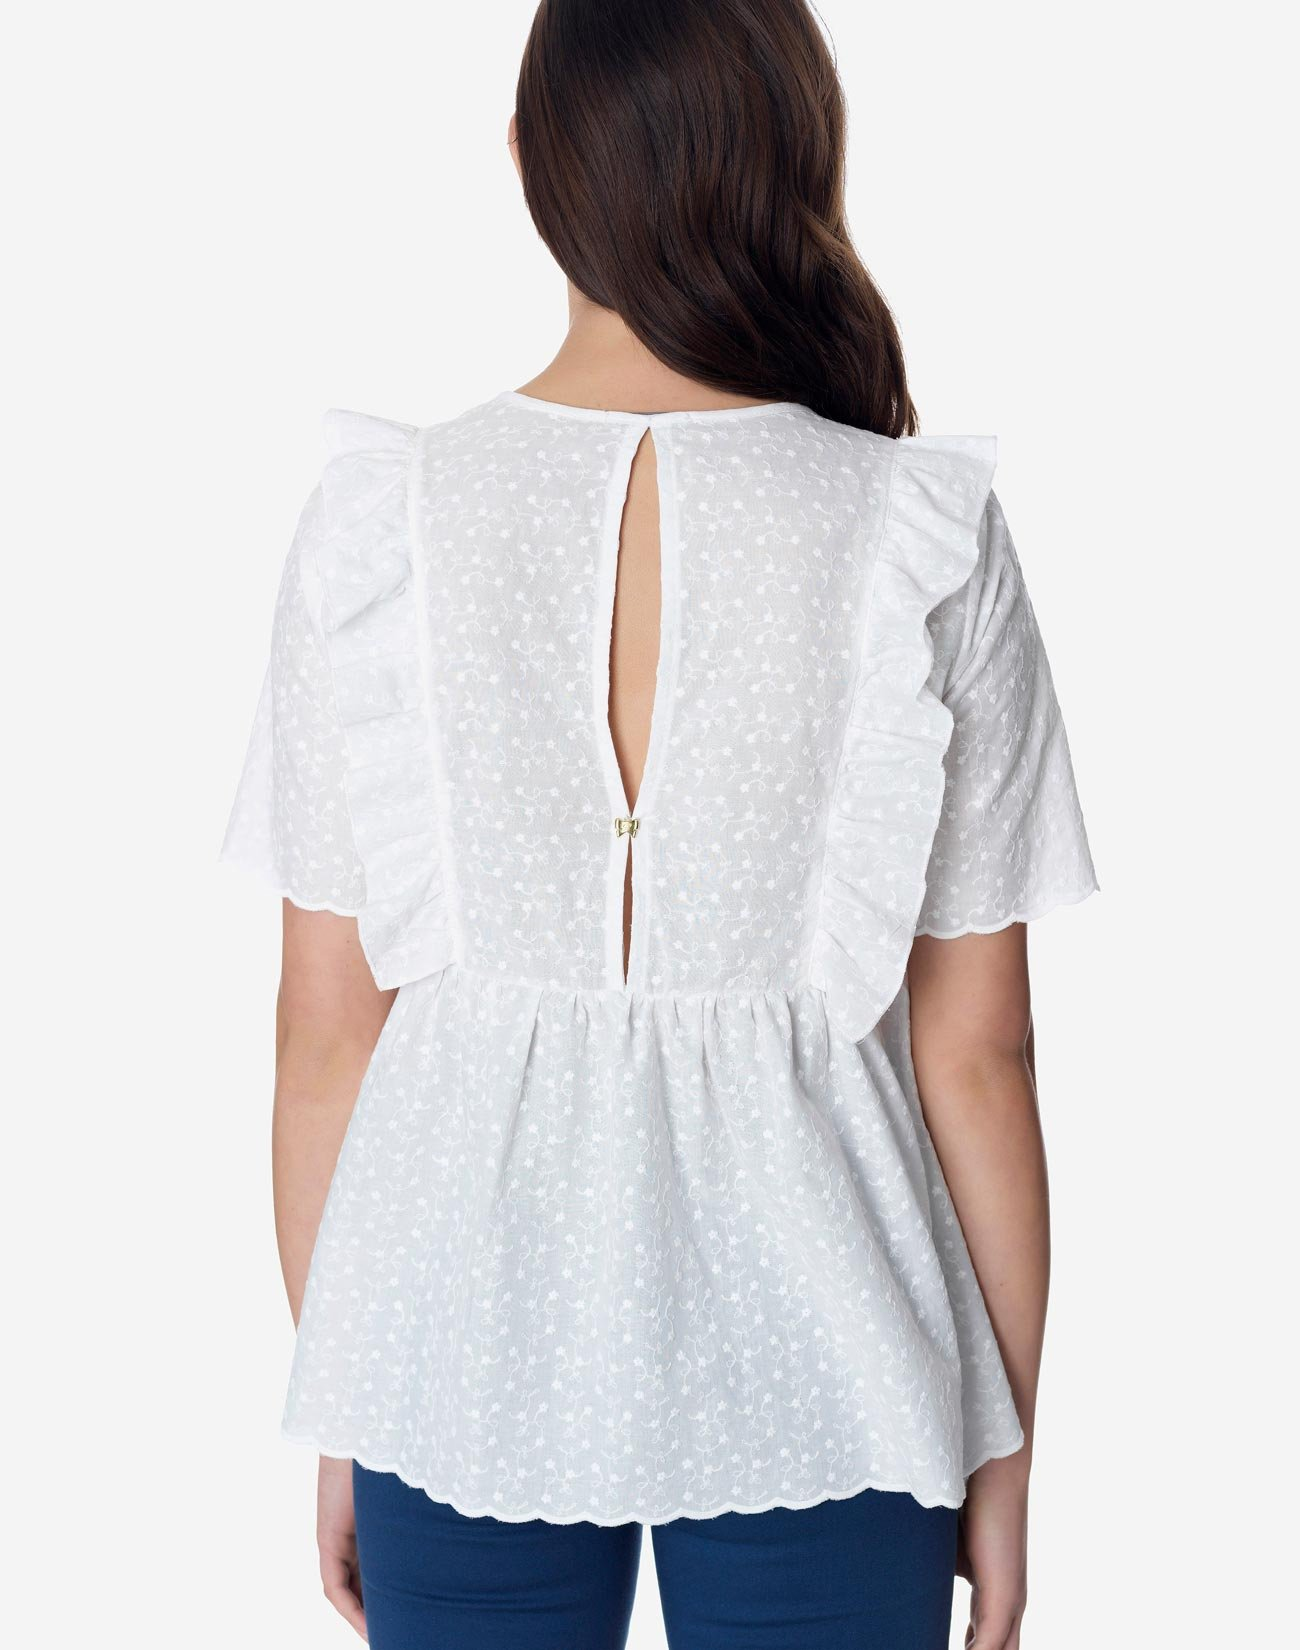 Top broderie with detail ruffles